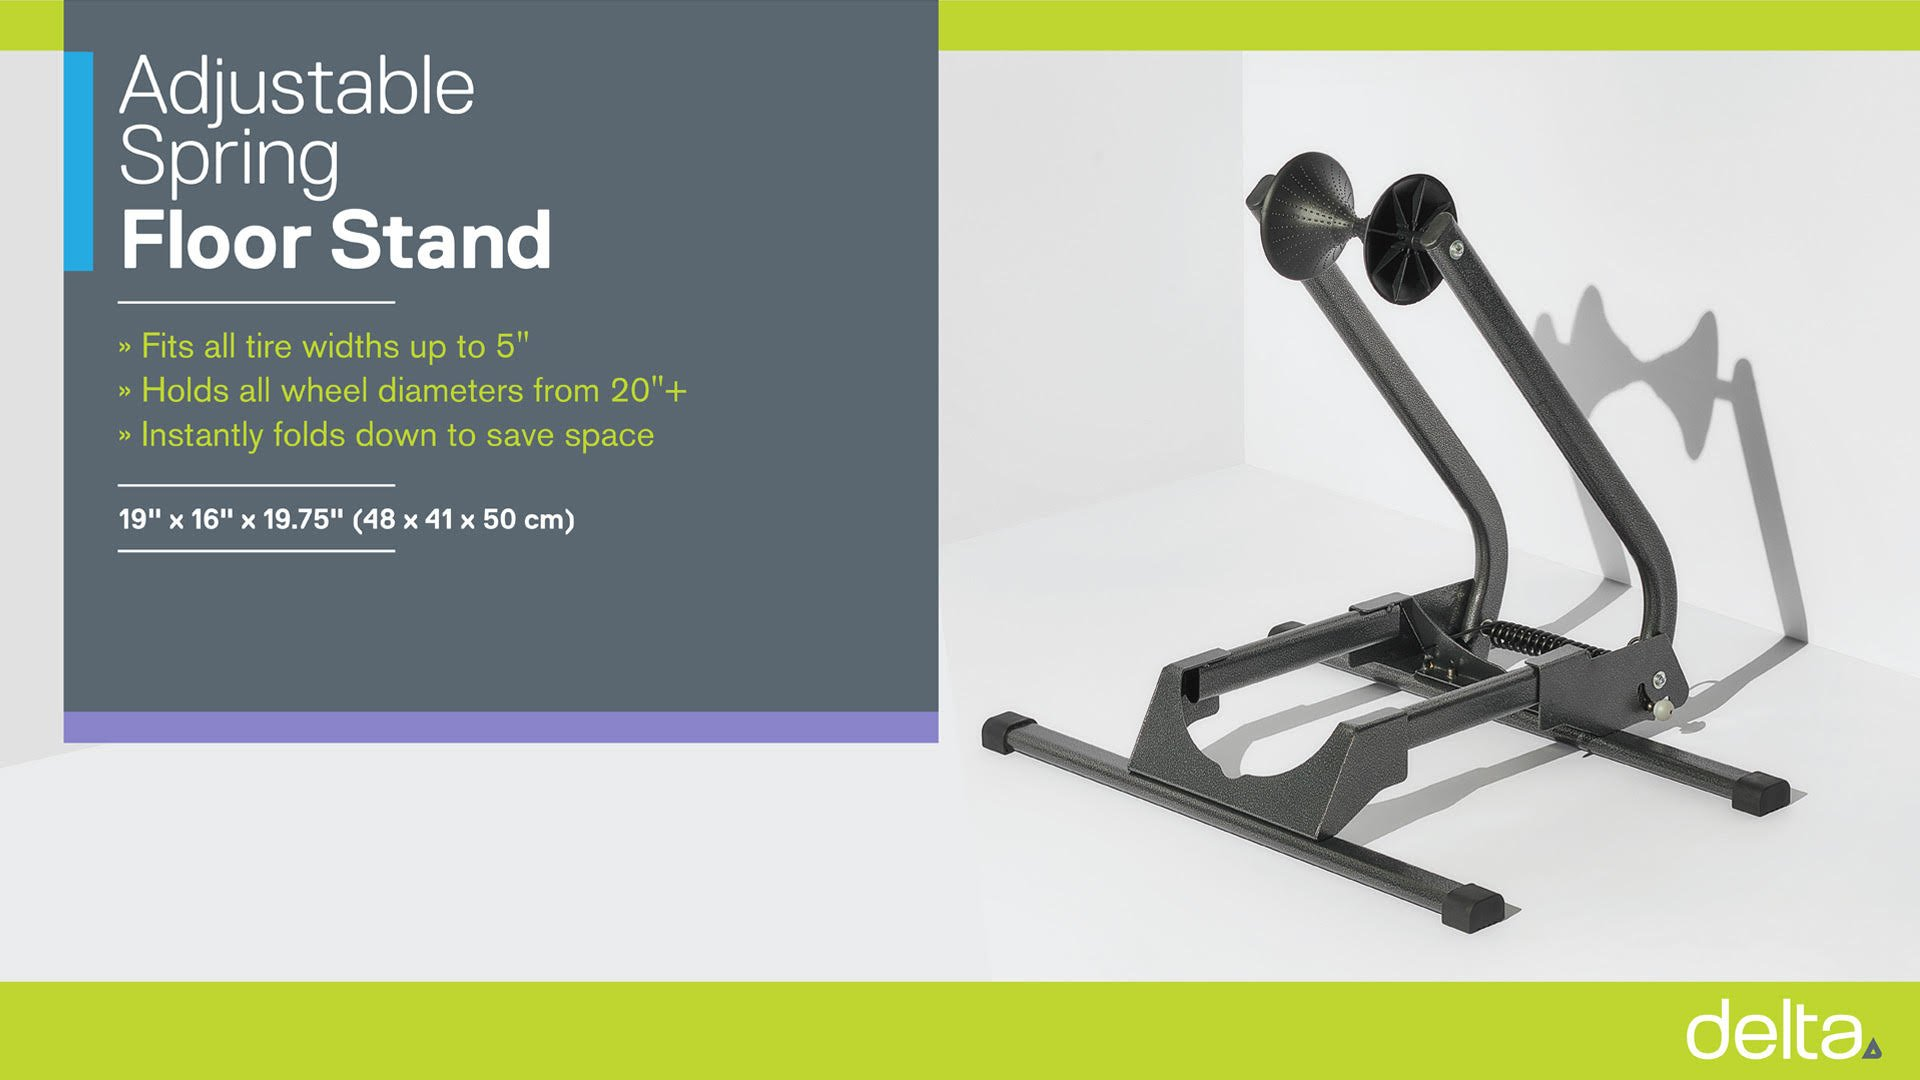 Adjustable Spring Floor Stand instructions